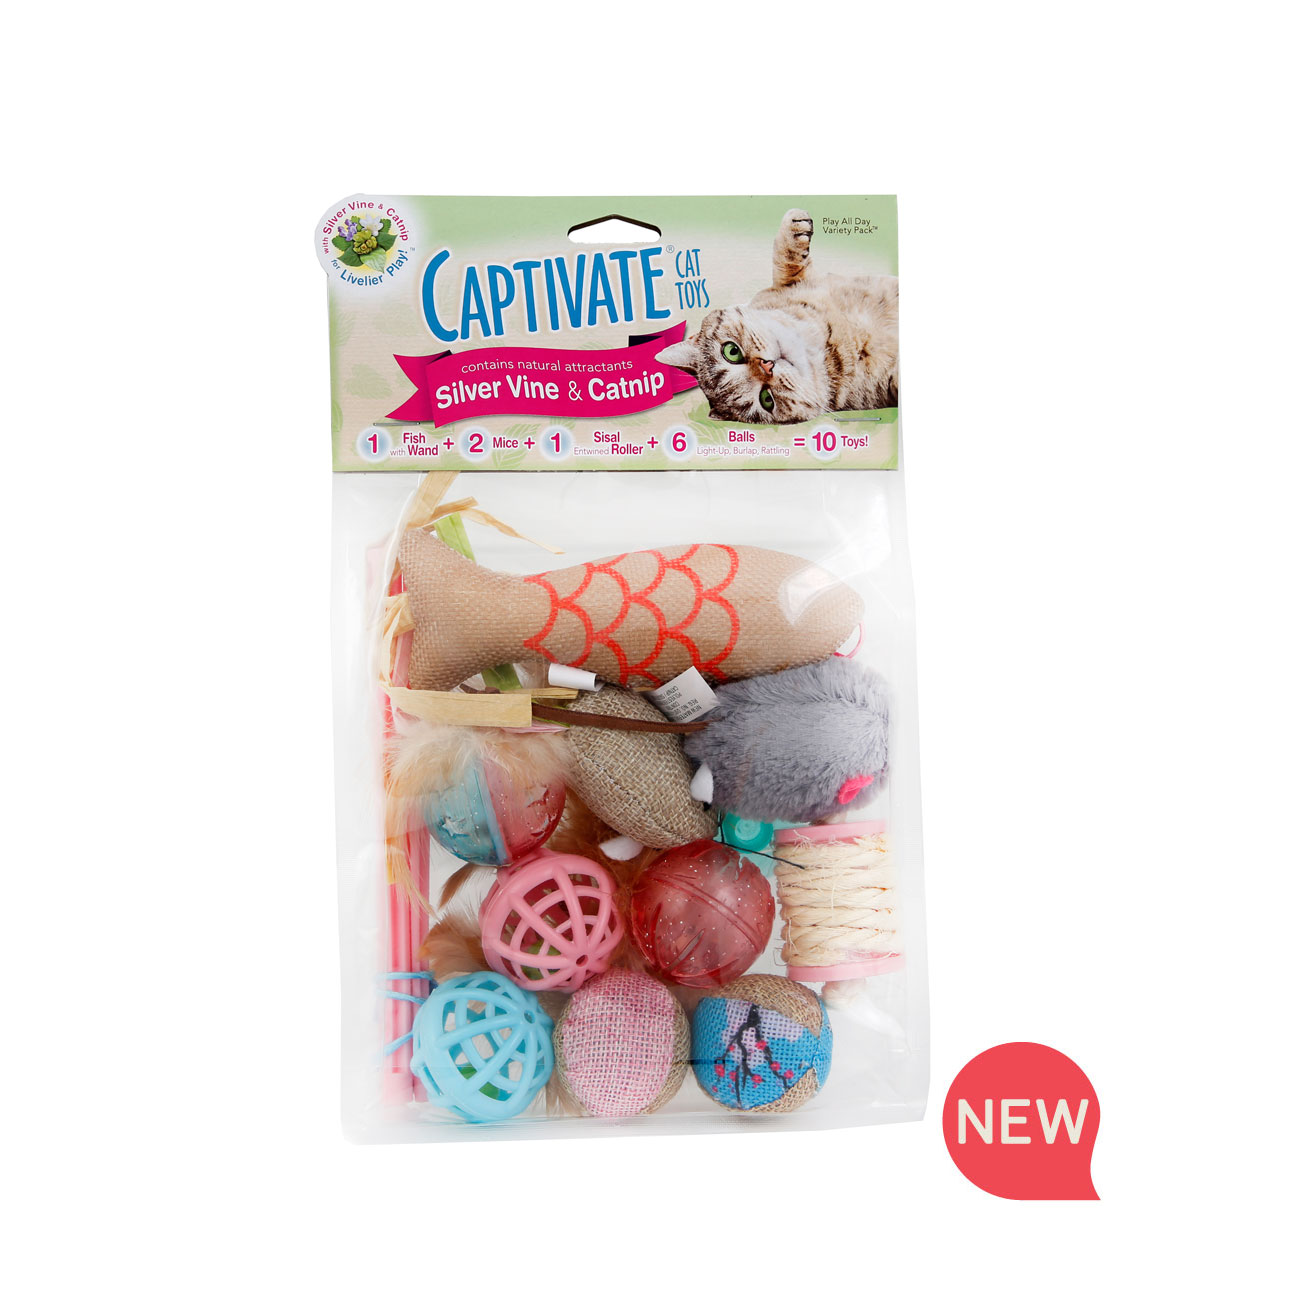 Hartz captivate cat toy with silver vine and catnip. Variety pack. Front of package. Hartz SKU#3270011251